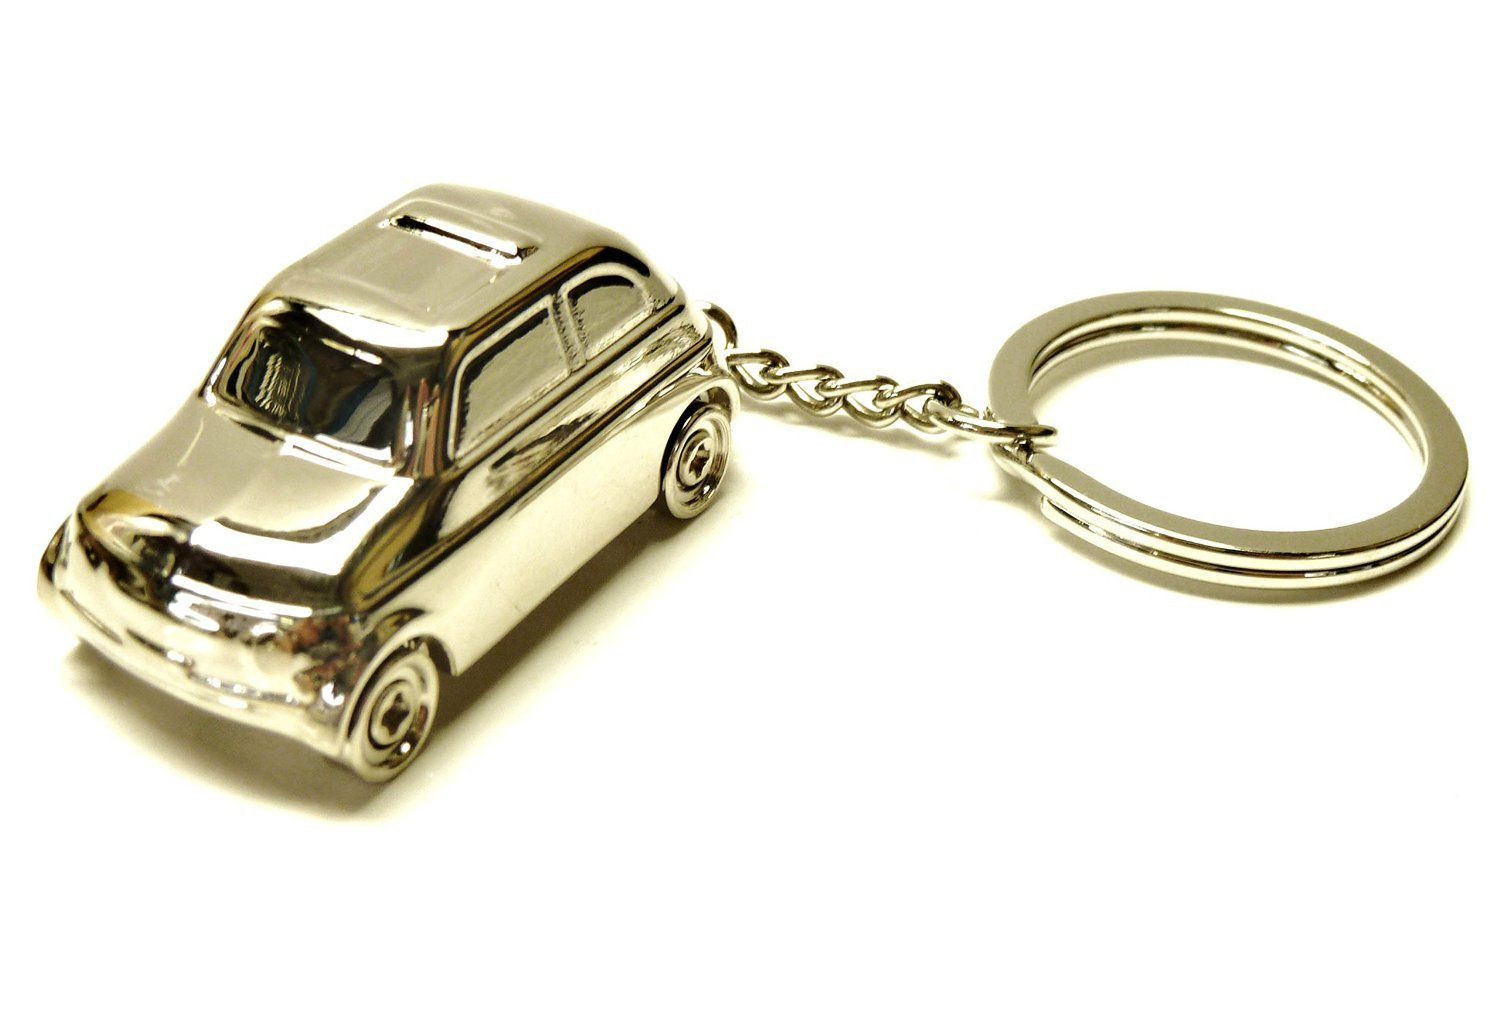 Cheap Fiat Key Ring Find Fiat Key Ring Deals On Line At Alibaba Com